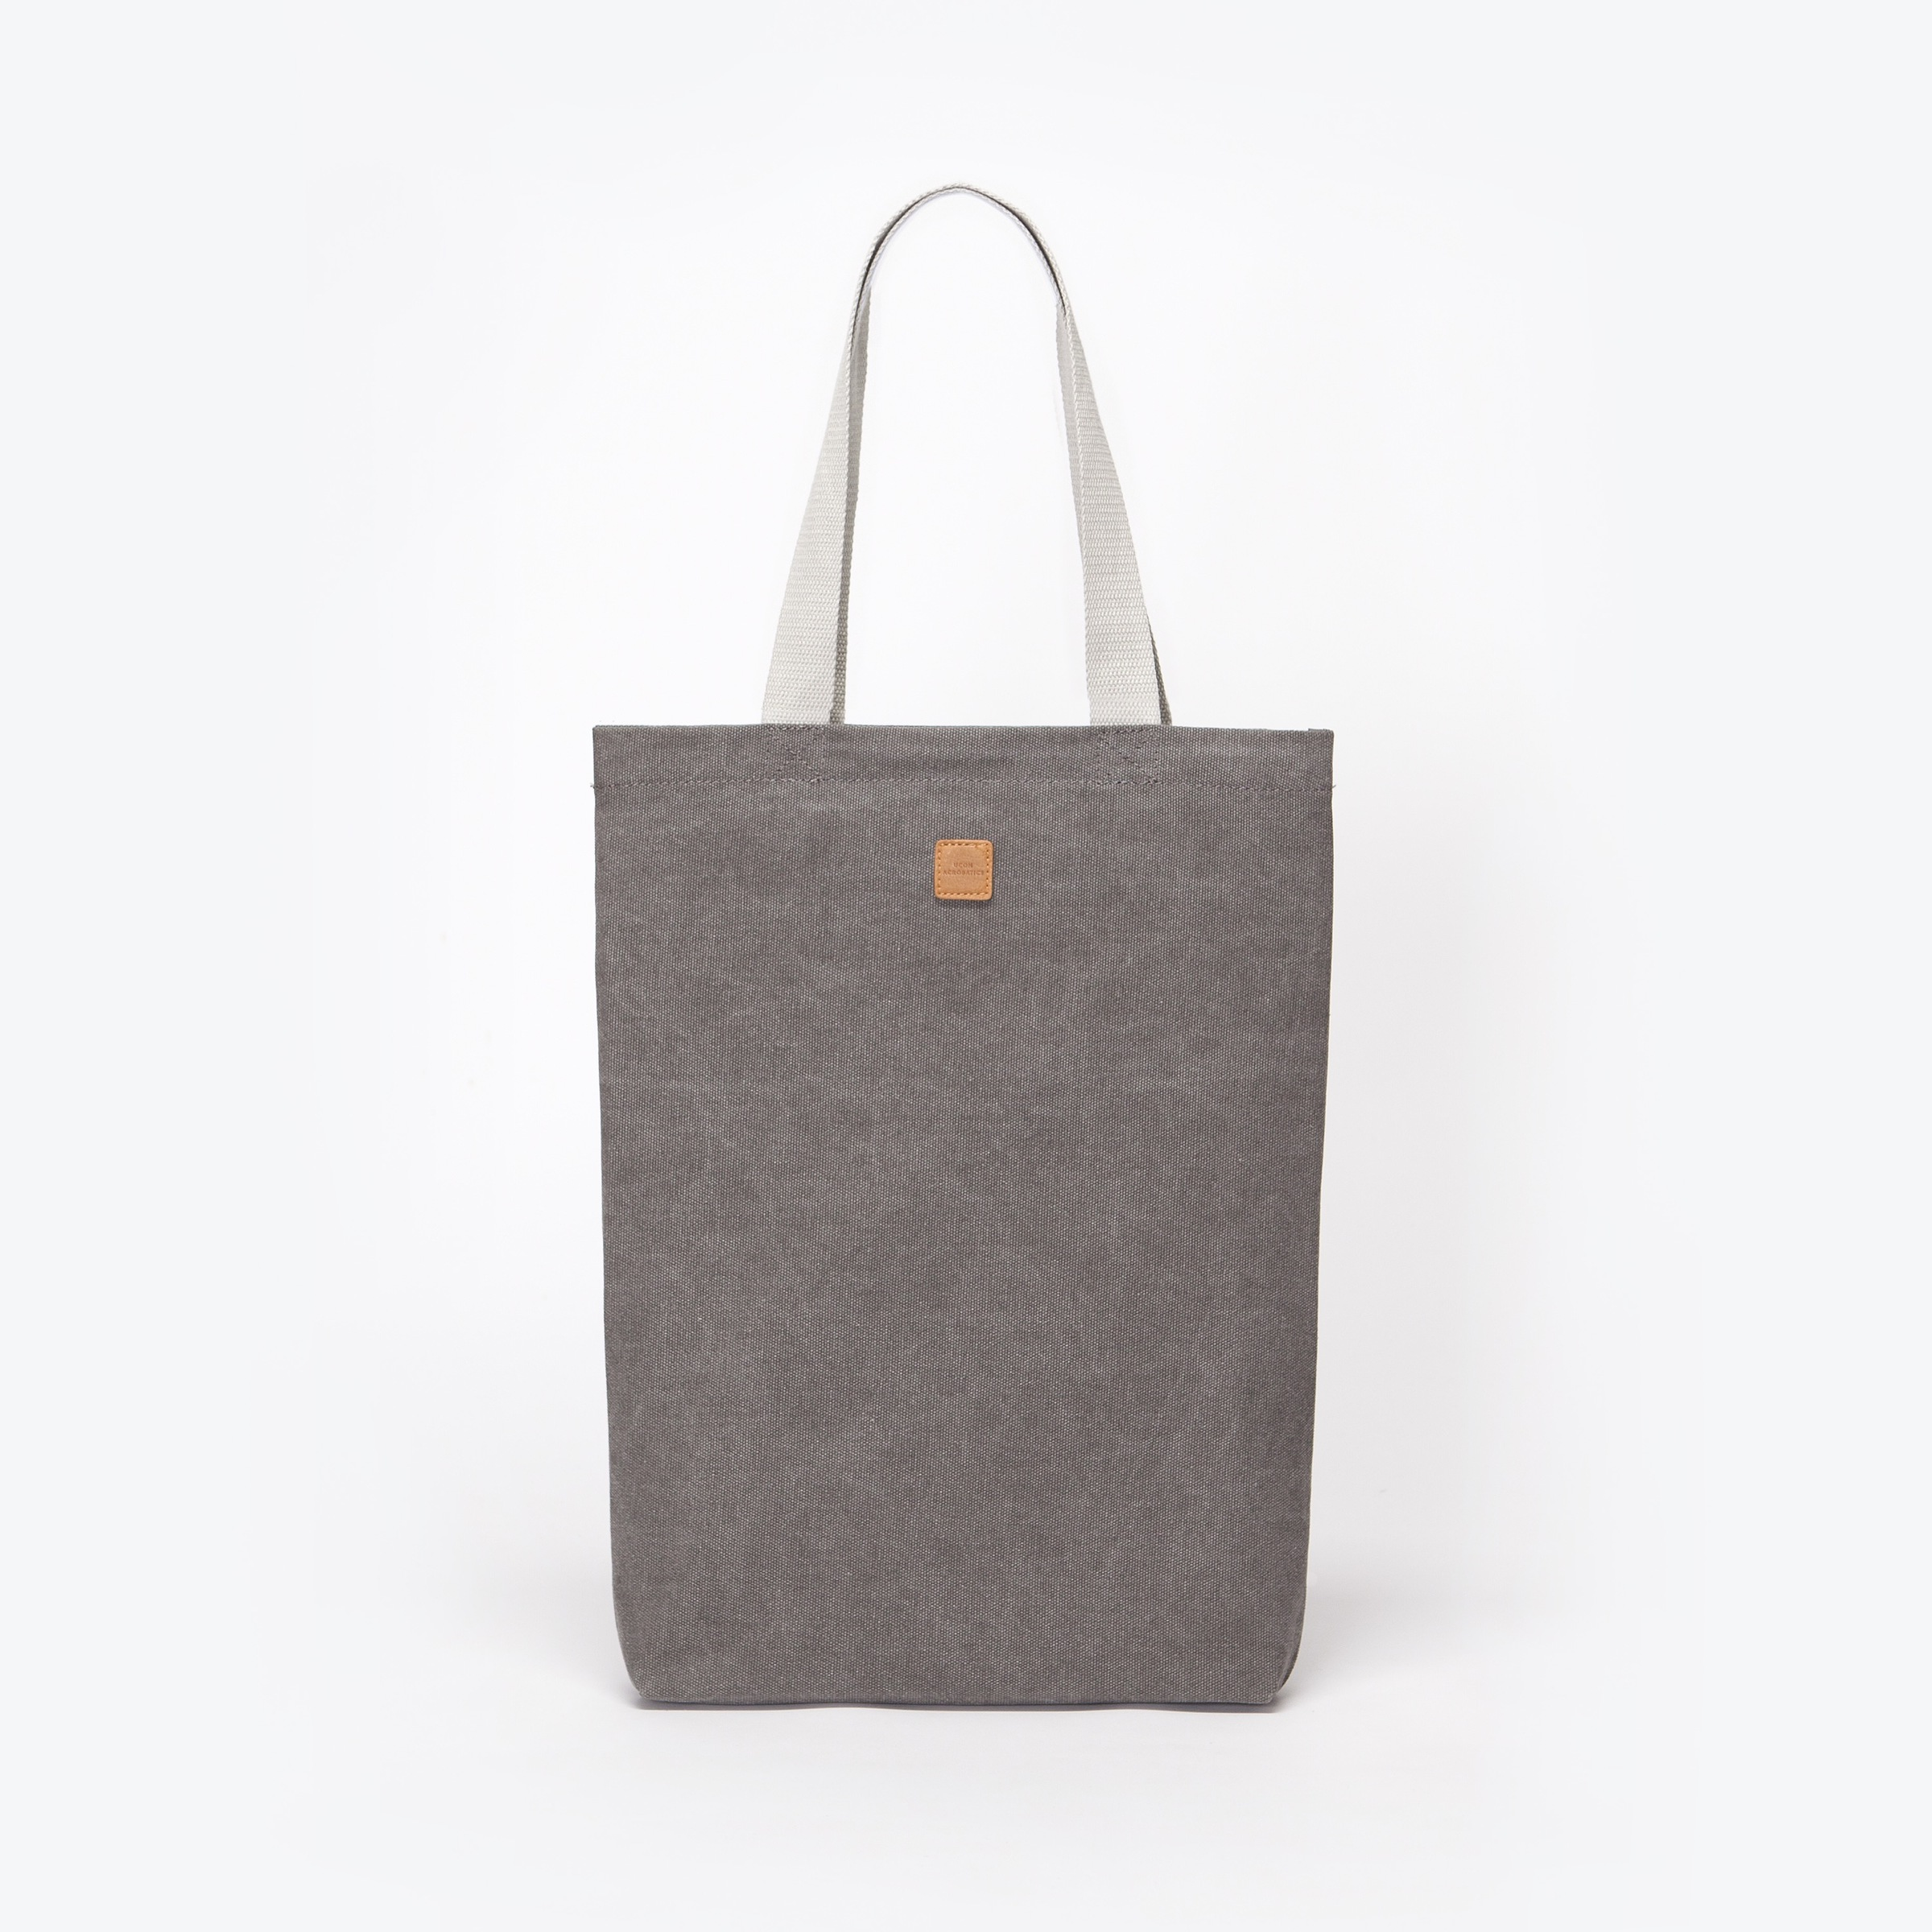 UA-TB-01_Finn-Bag_Grey_01.jpg